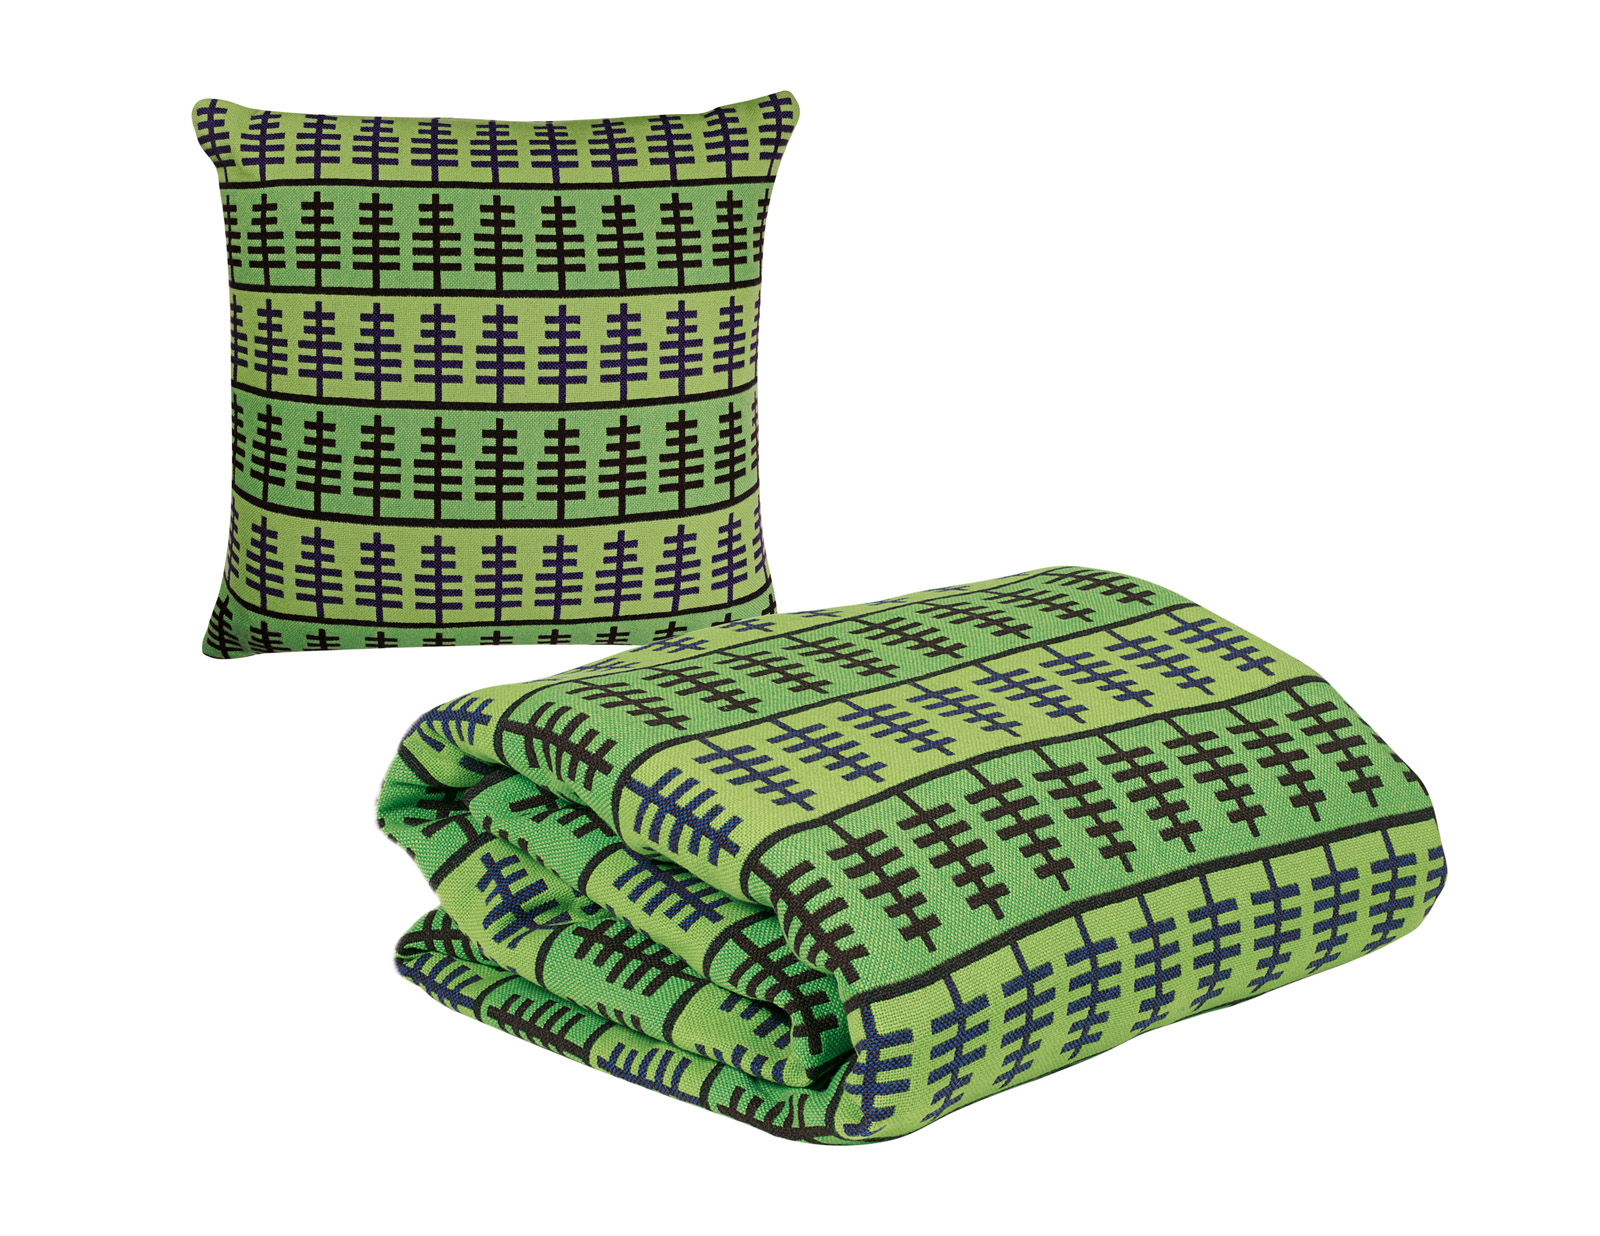 'Symetree' Laura Thomas for Heals Discovers 2011. Lambswool blankets and cushions.